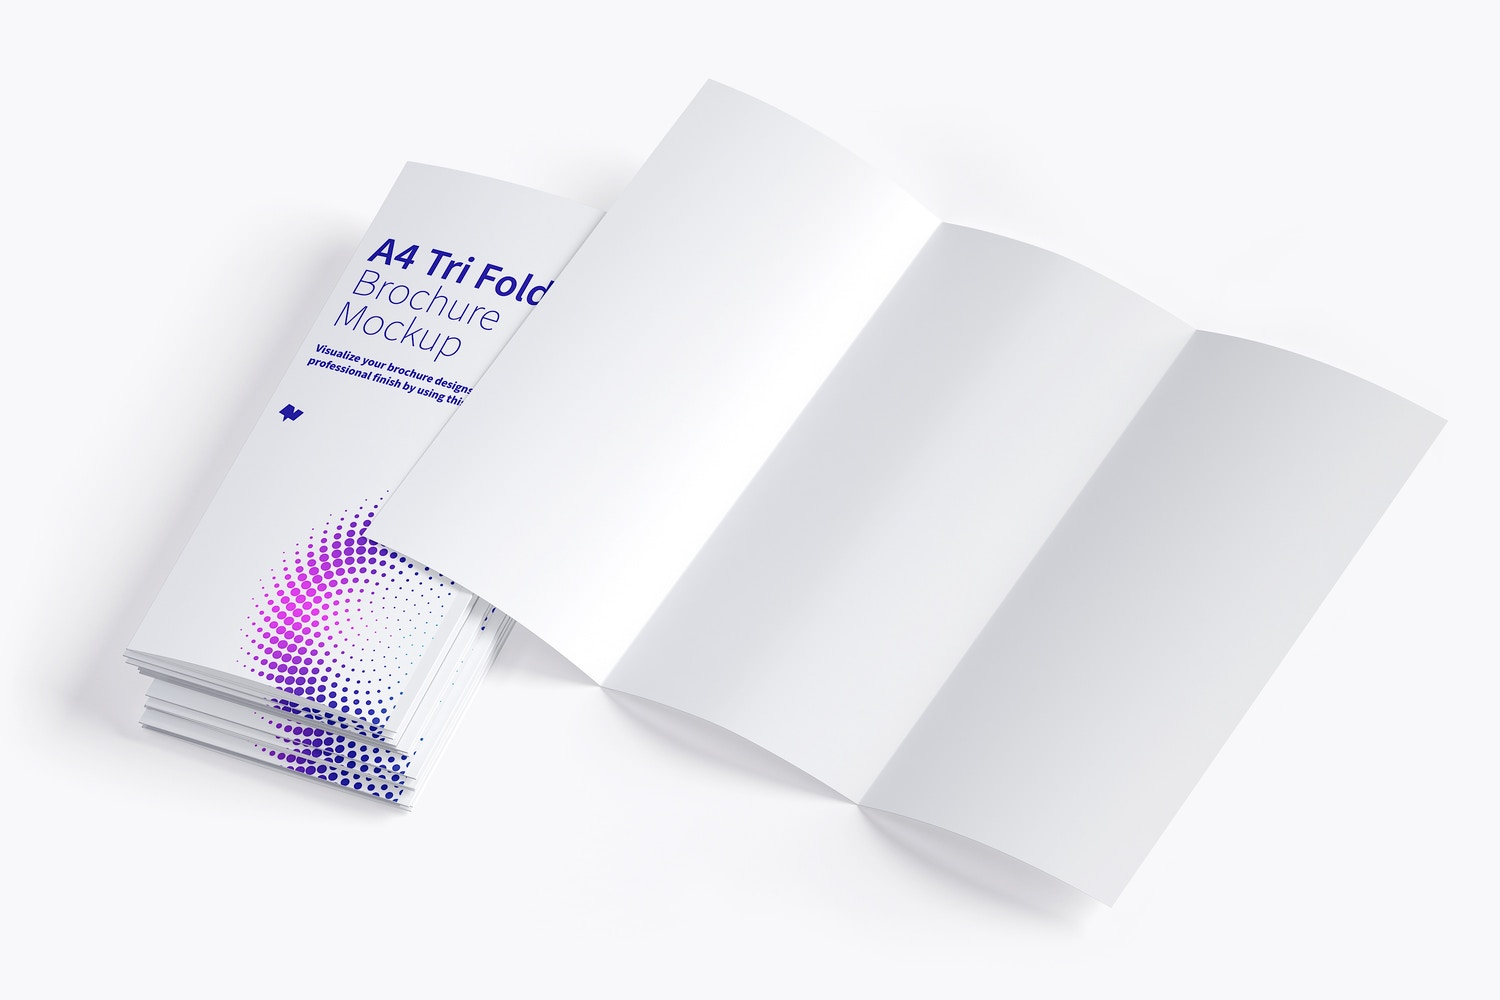 A4 Trifold Brochure Mockup 08 by Original Mockups on Original Mockups